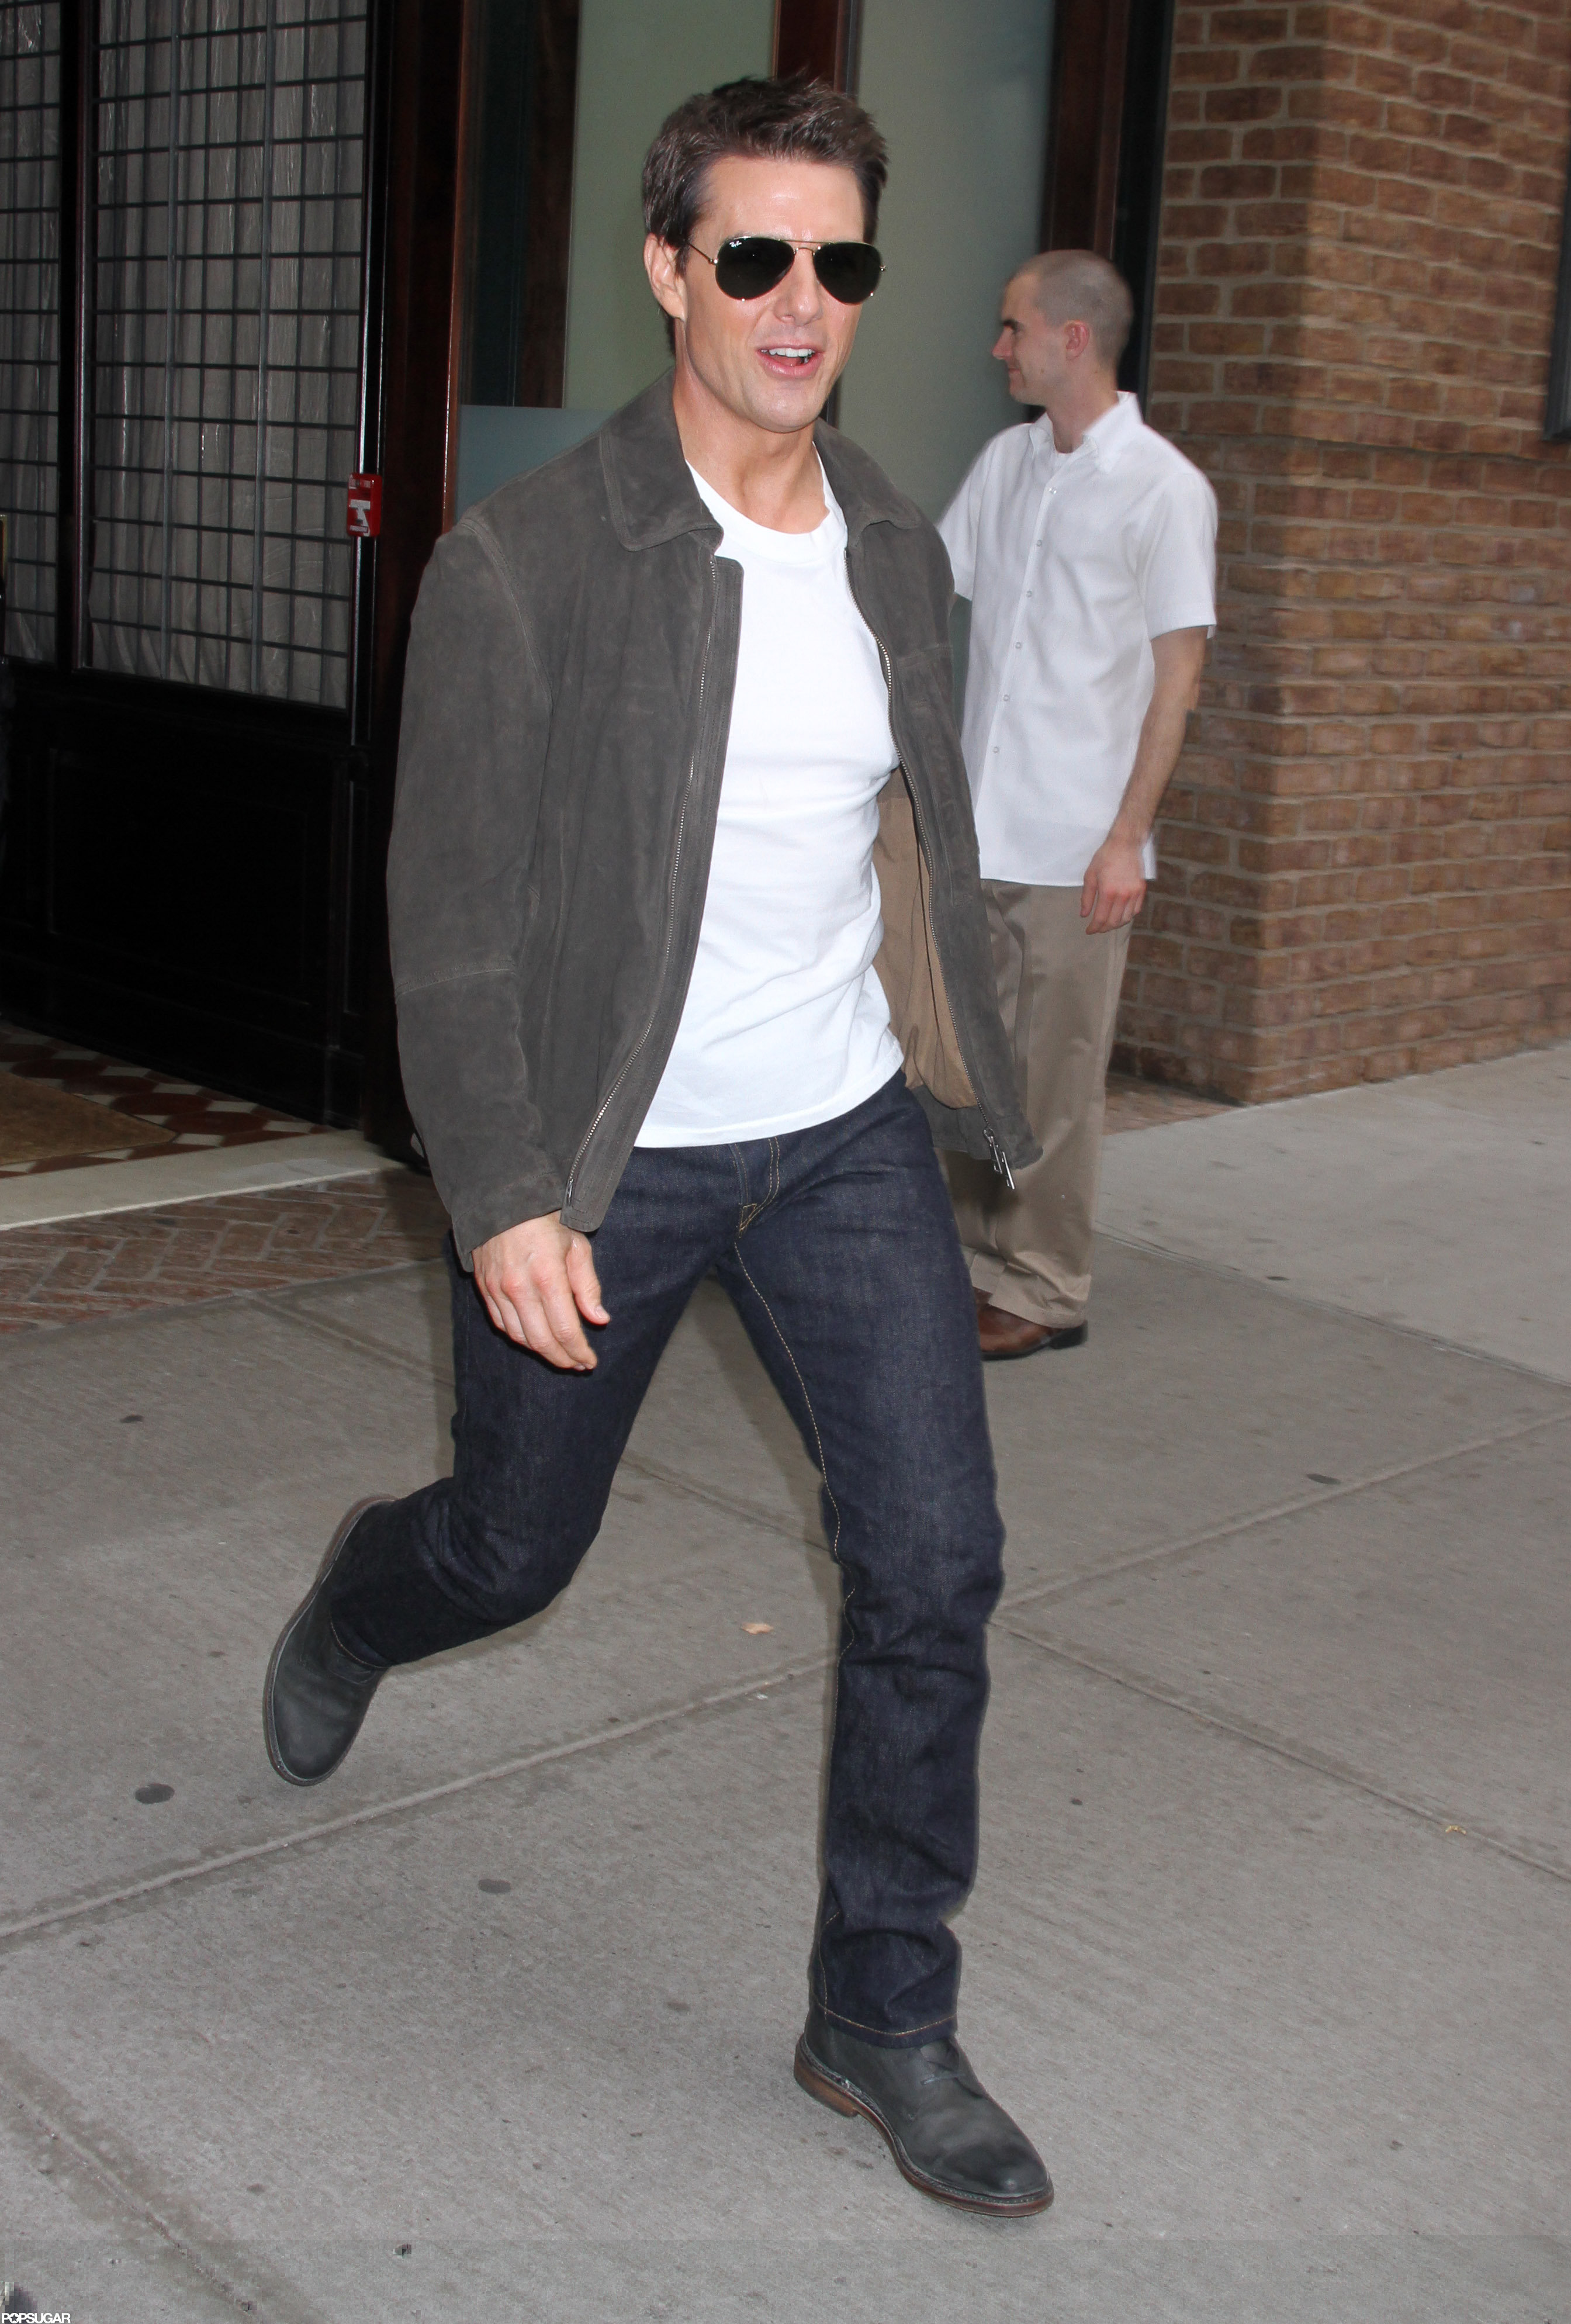 Tom Cruise walked fast to catch up with Suri.